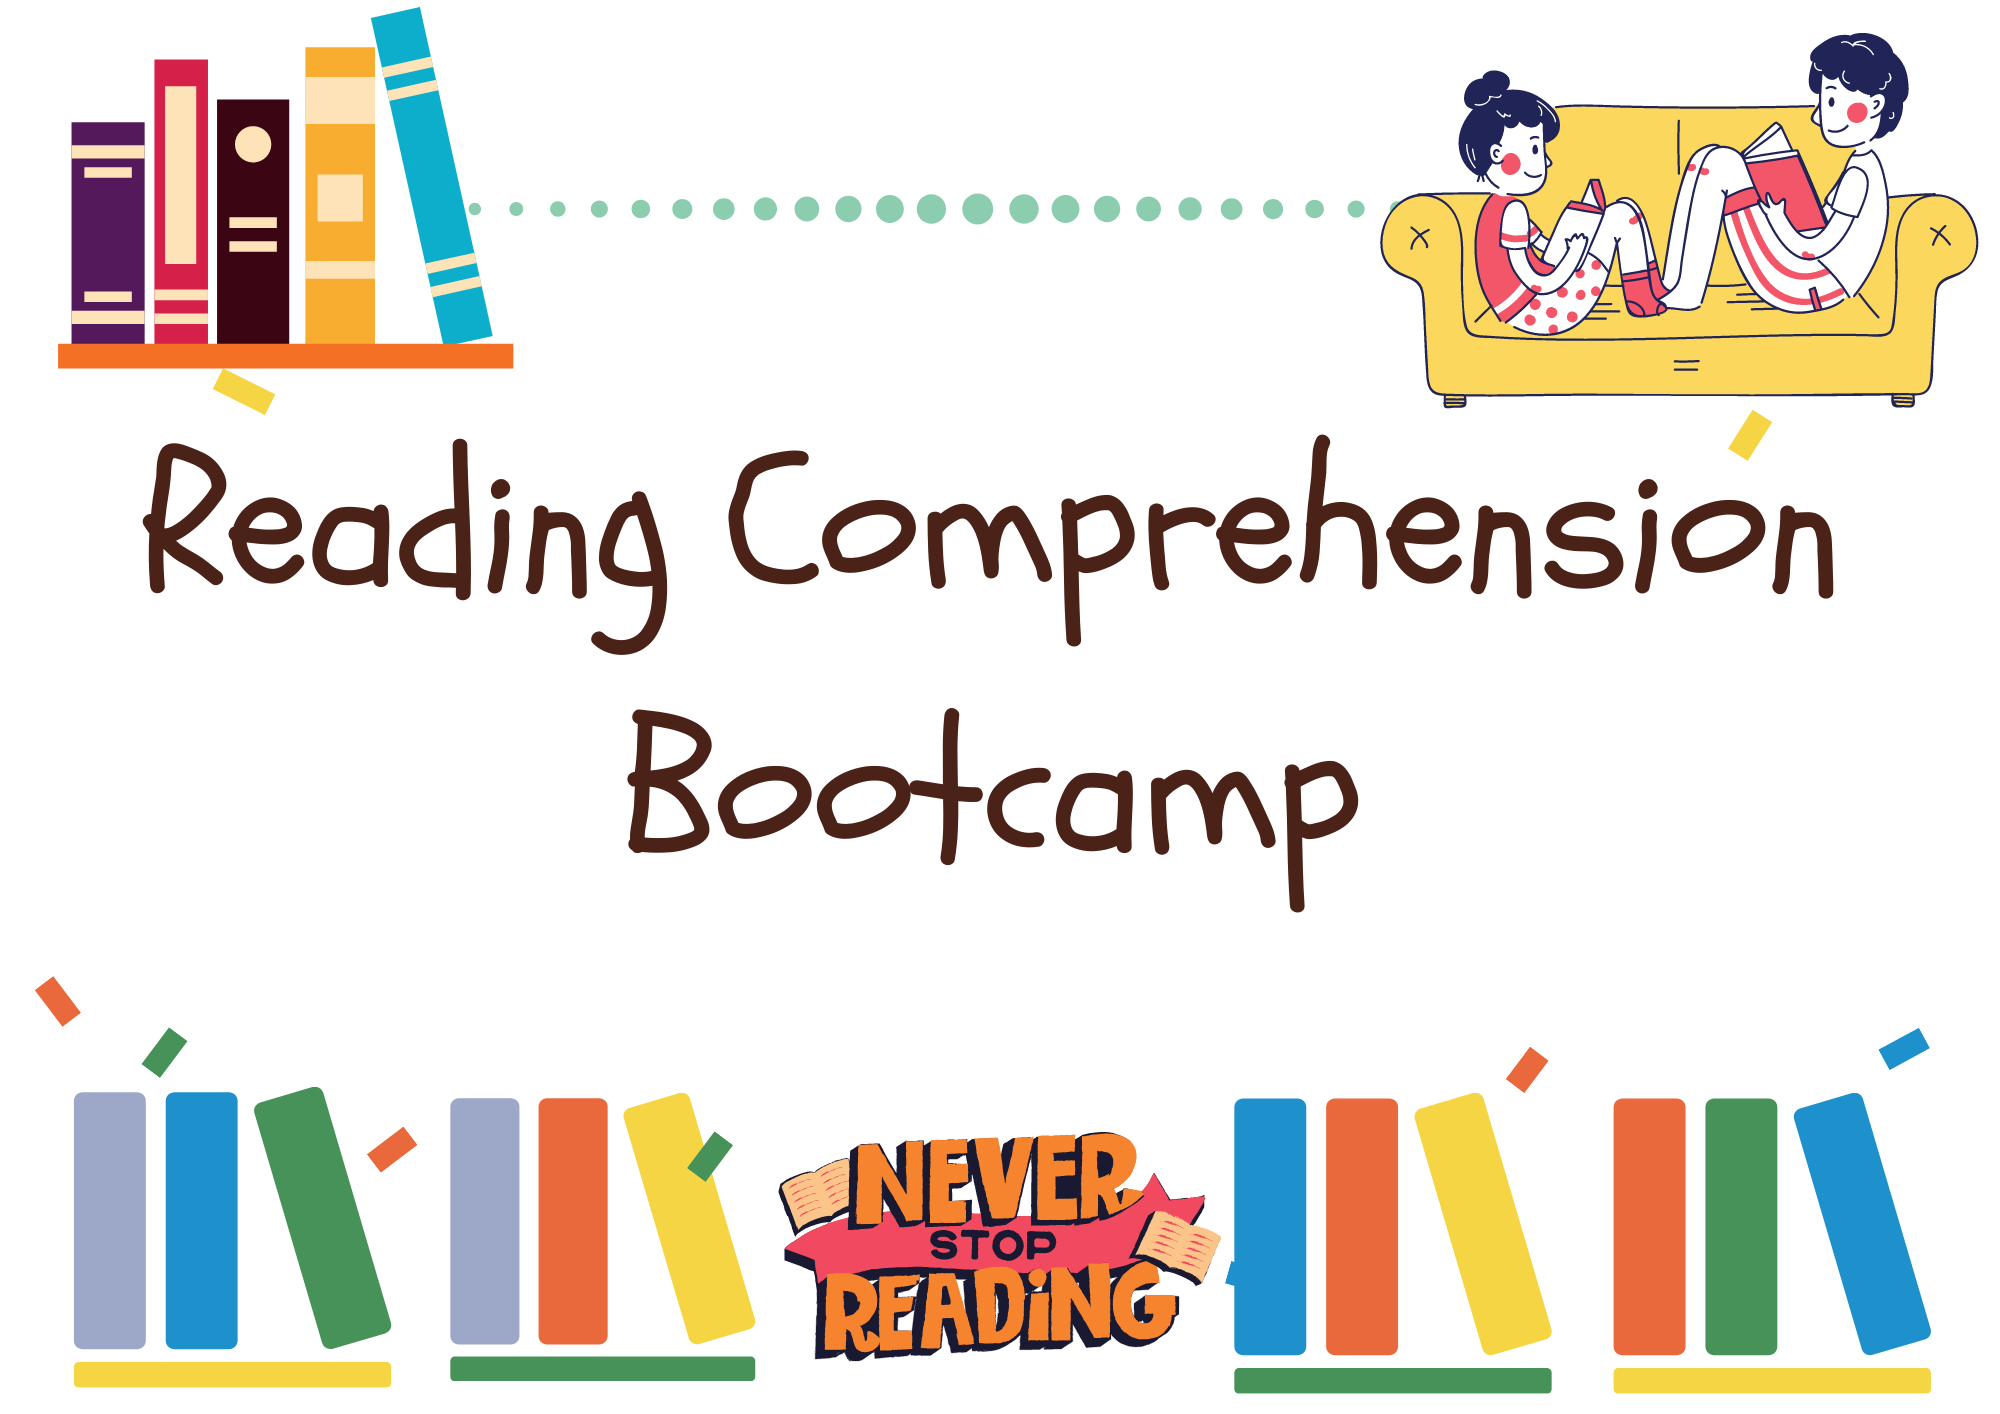 Reading Comprehension Bootcamp